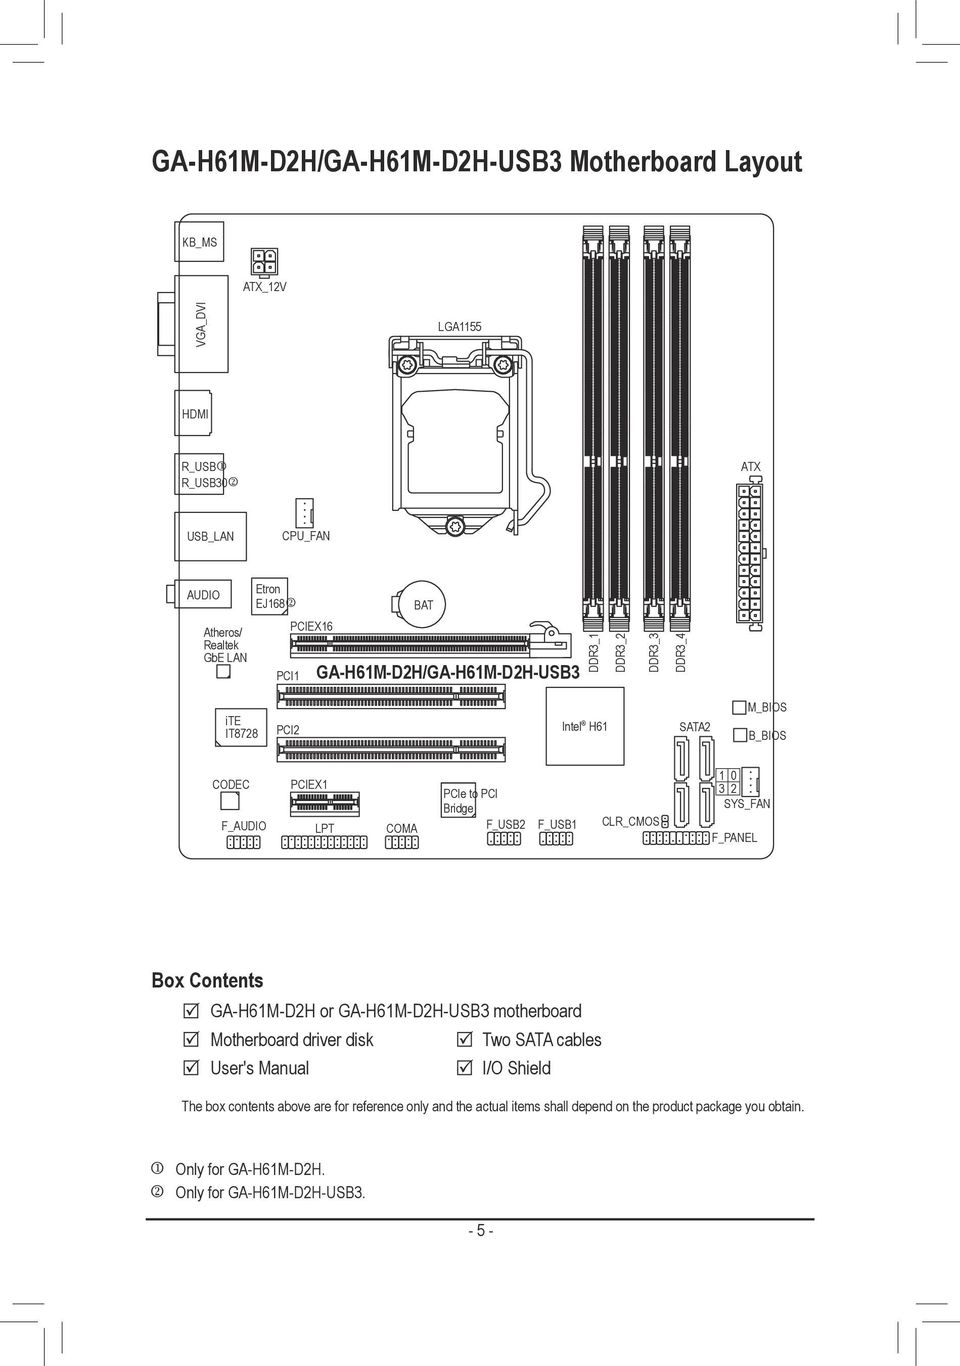 F_USB2 F_USB1 CLR_CMOS 1 0 3 2 SYS_FAN F_PANEL Box Contents GA-H61M-D2H or GA-H61M-D2H-USB3 motherboard Motherboard driver disk Two SATA cables User's Manual I/O Shield